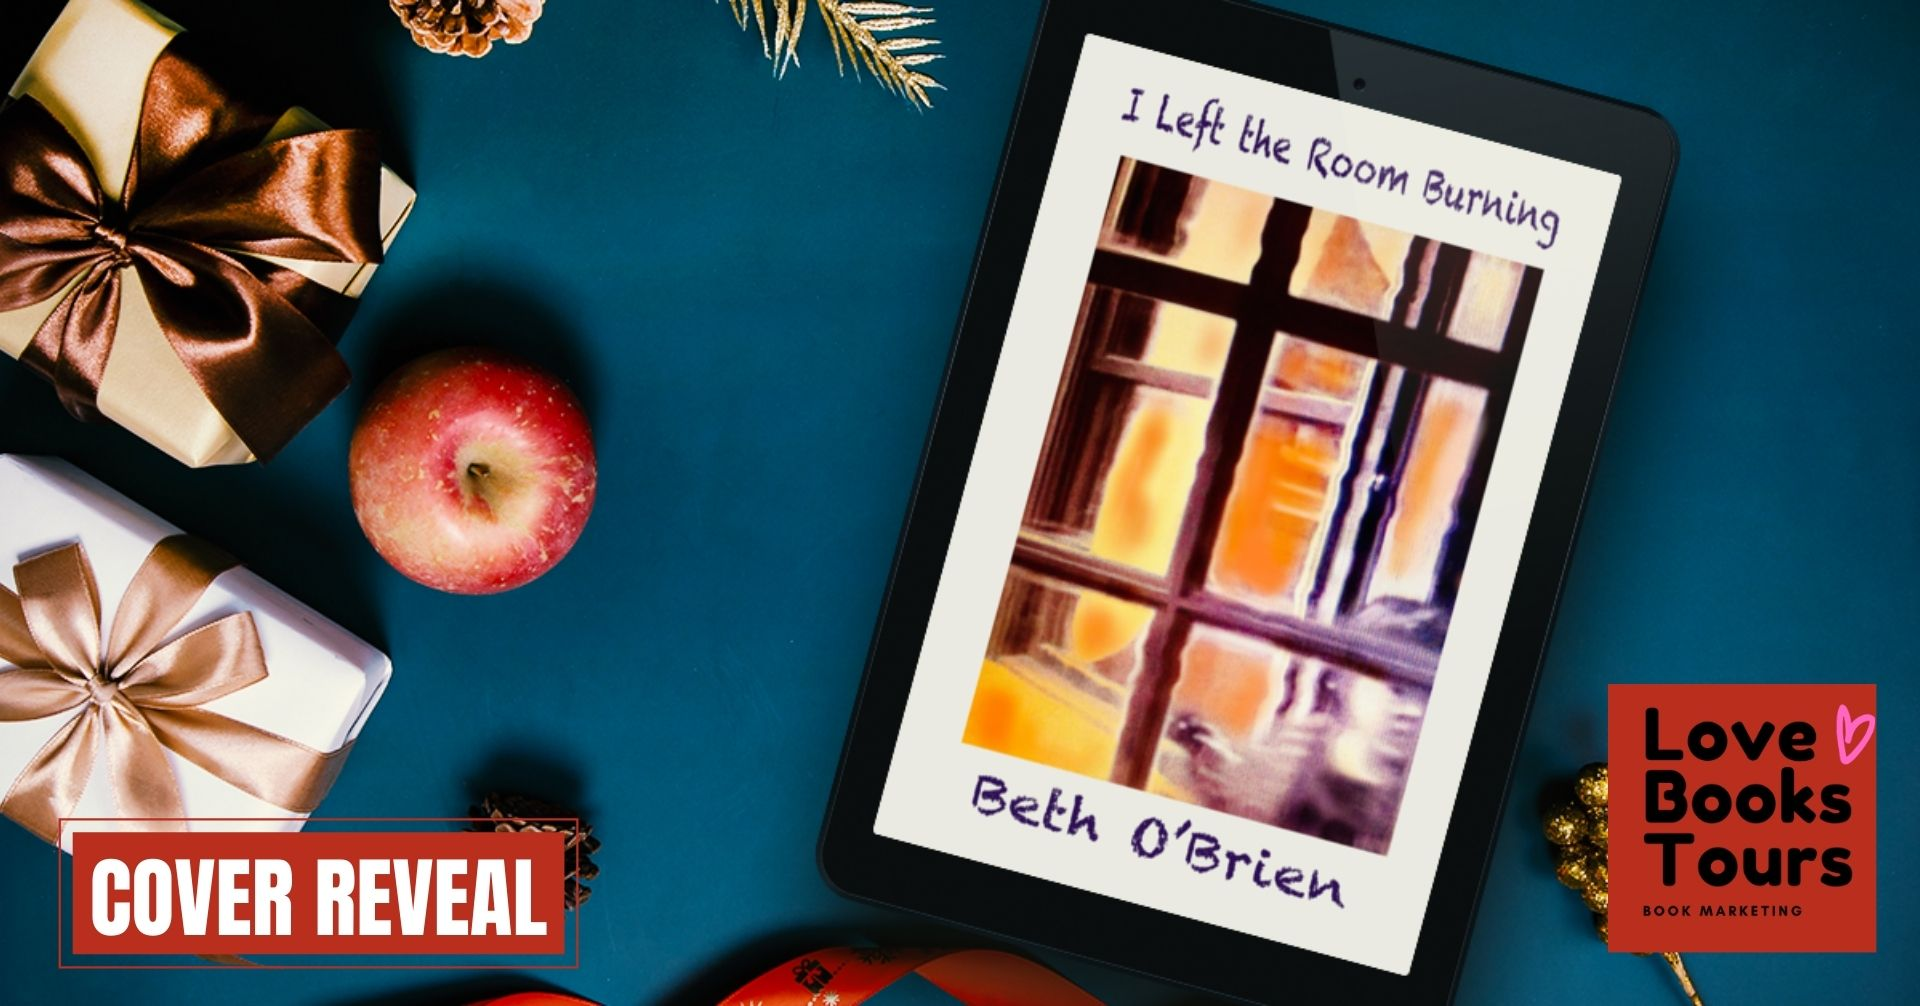 I Left the Room Burning COVER REVEAL Promo 2 (1)